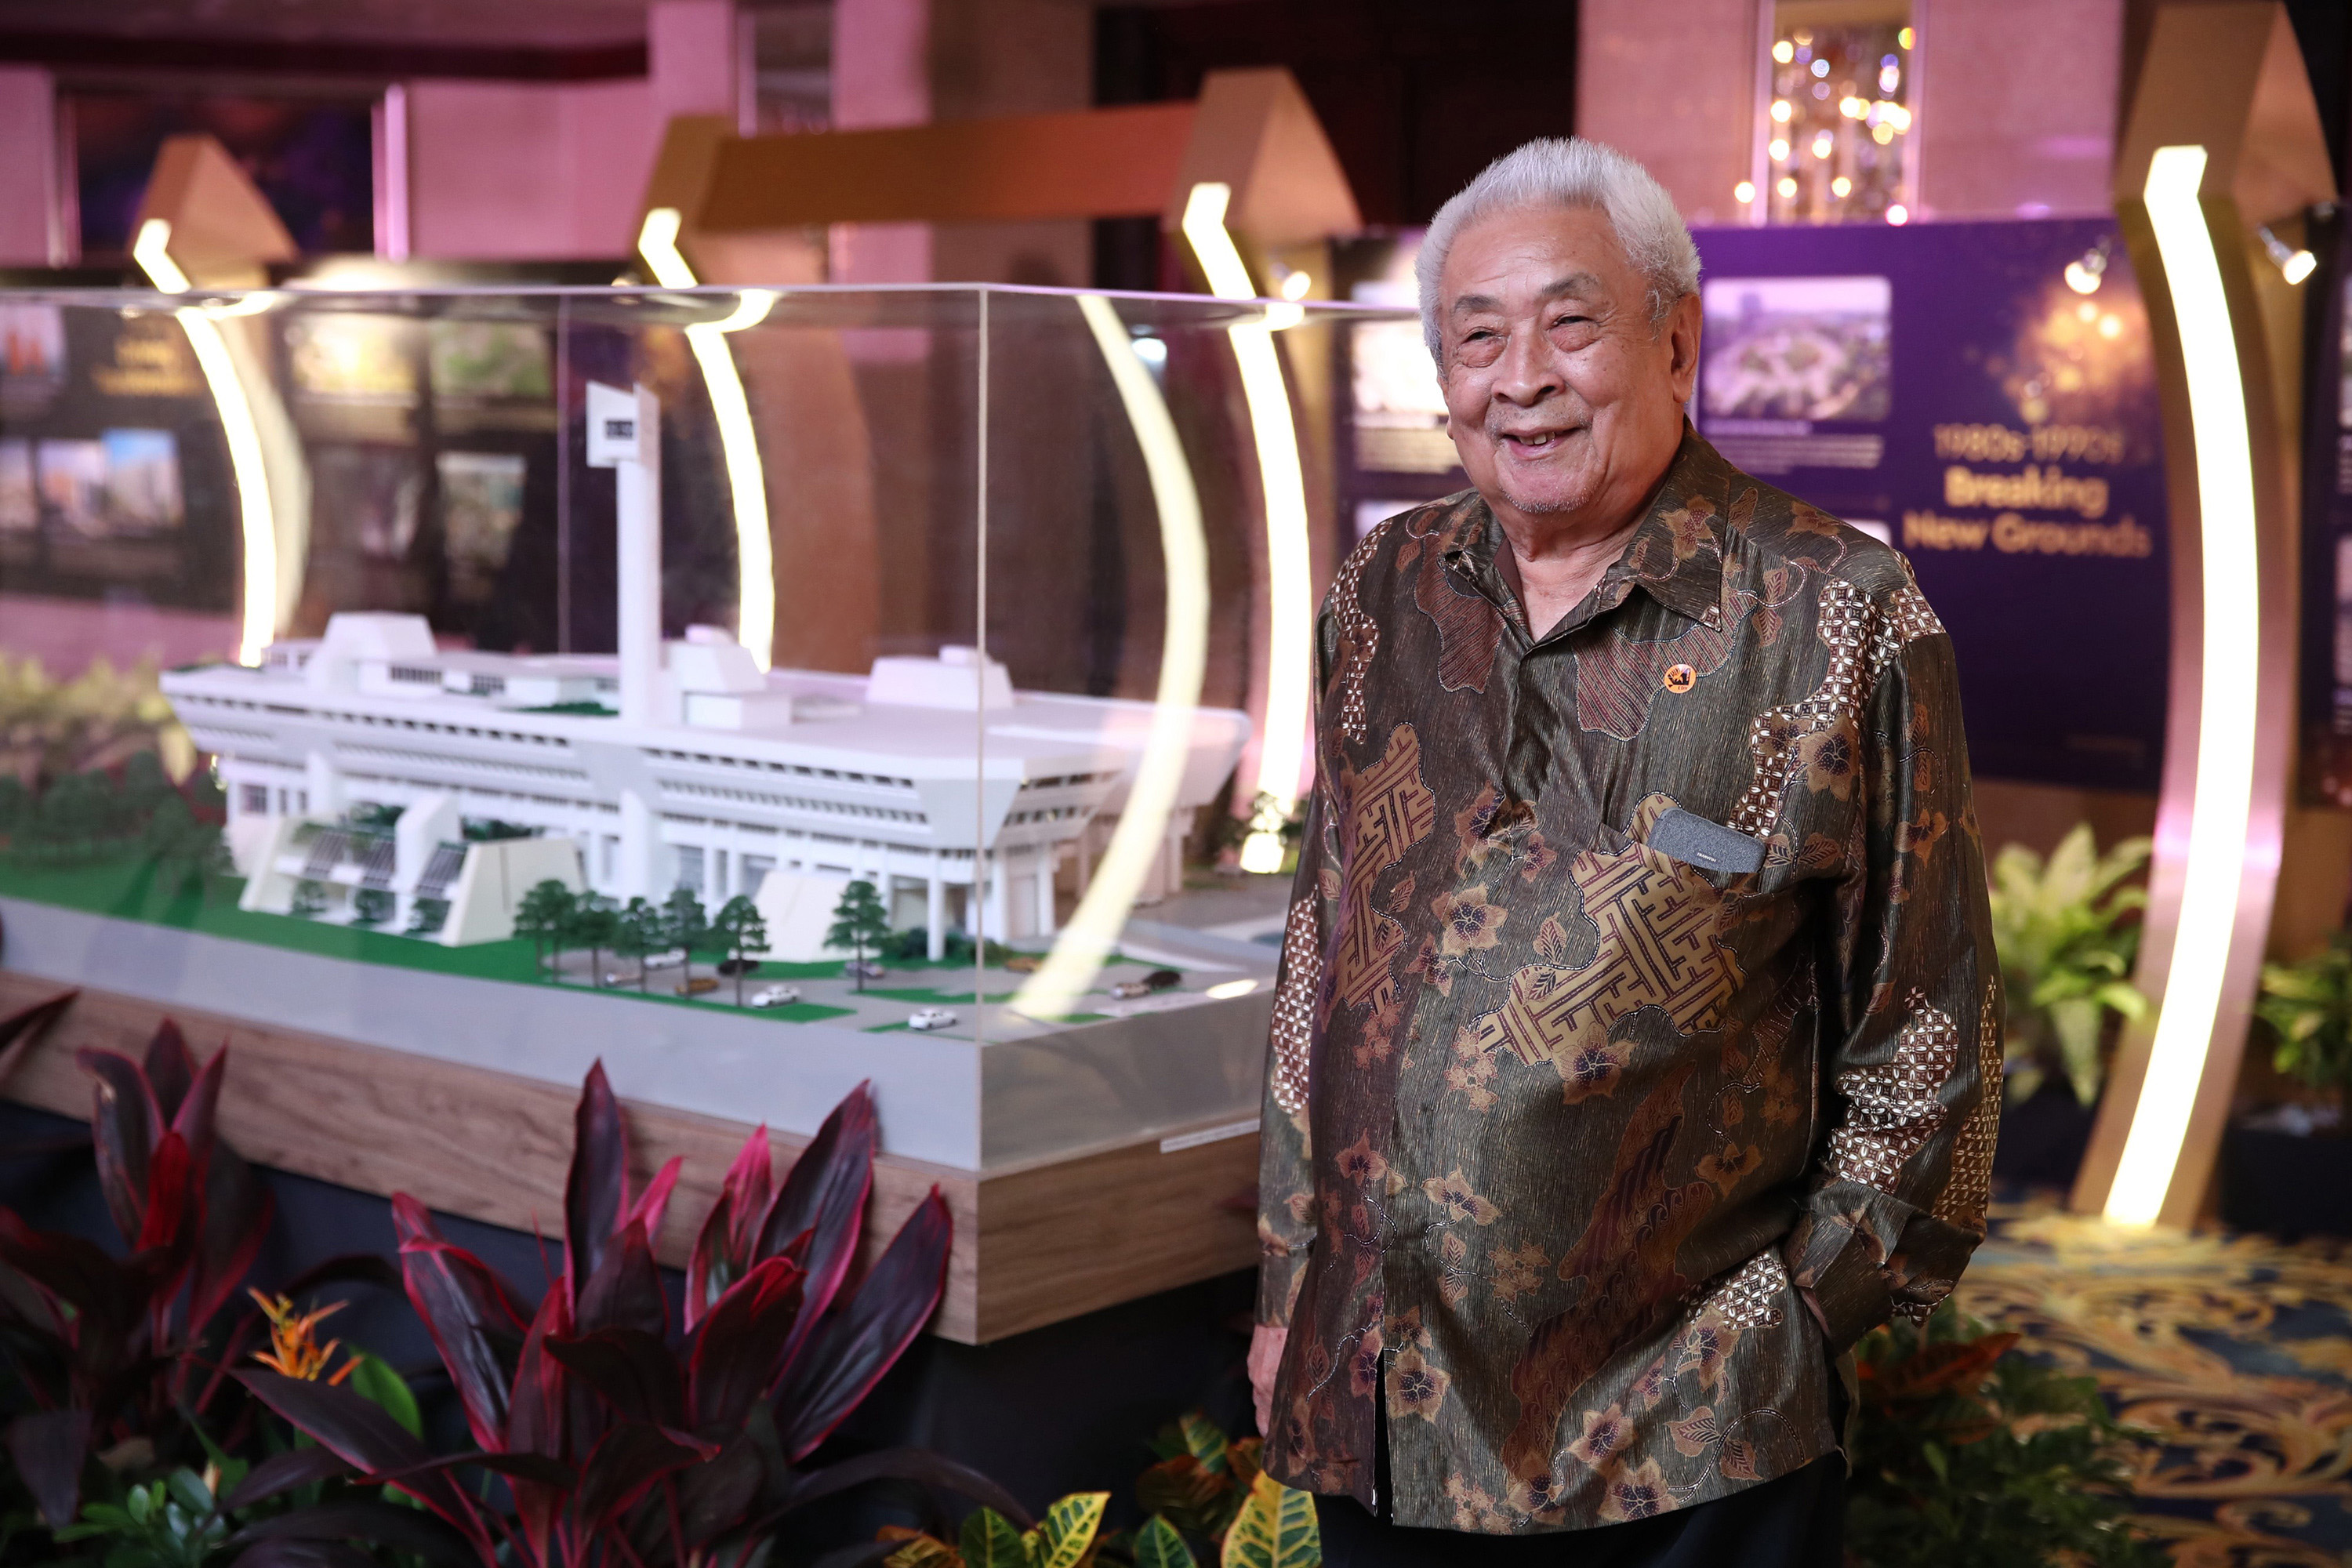 Lim with Town Hall model